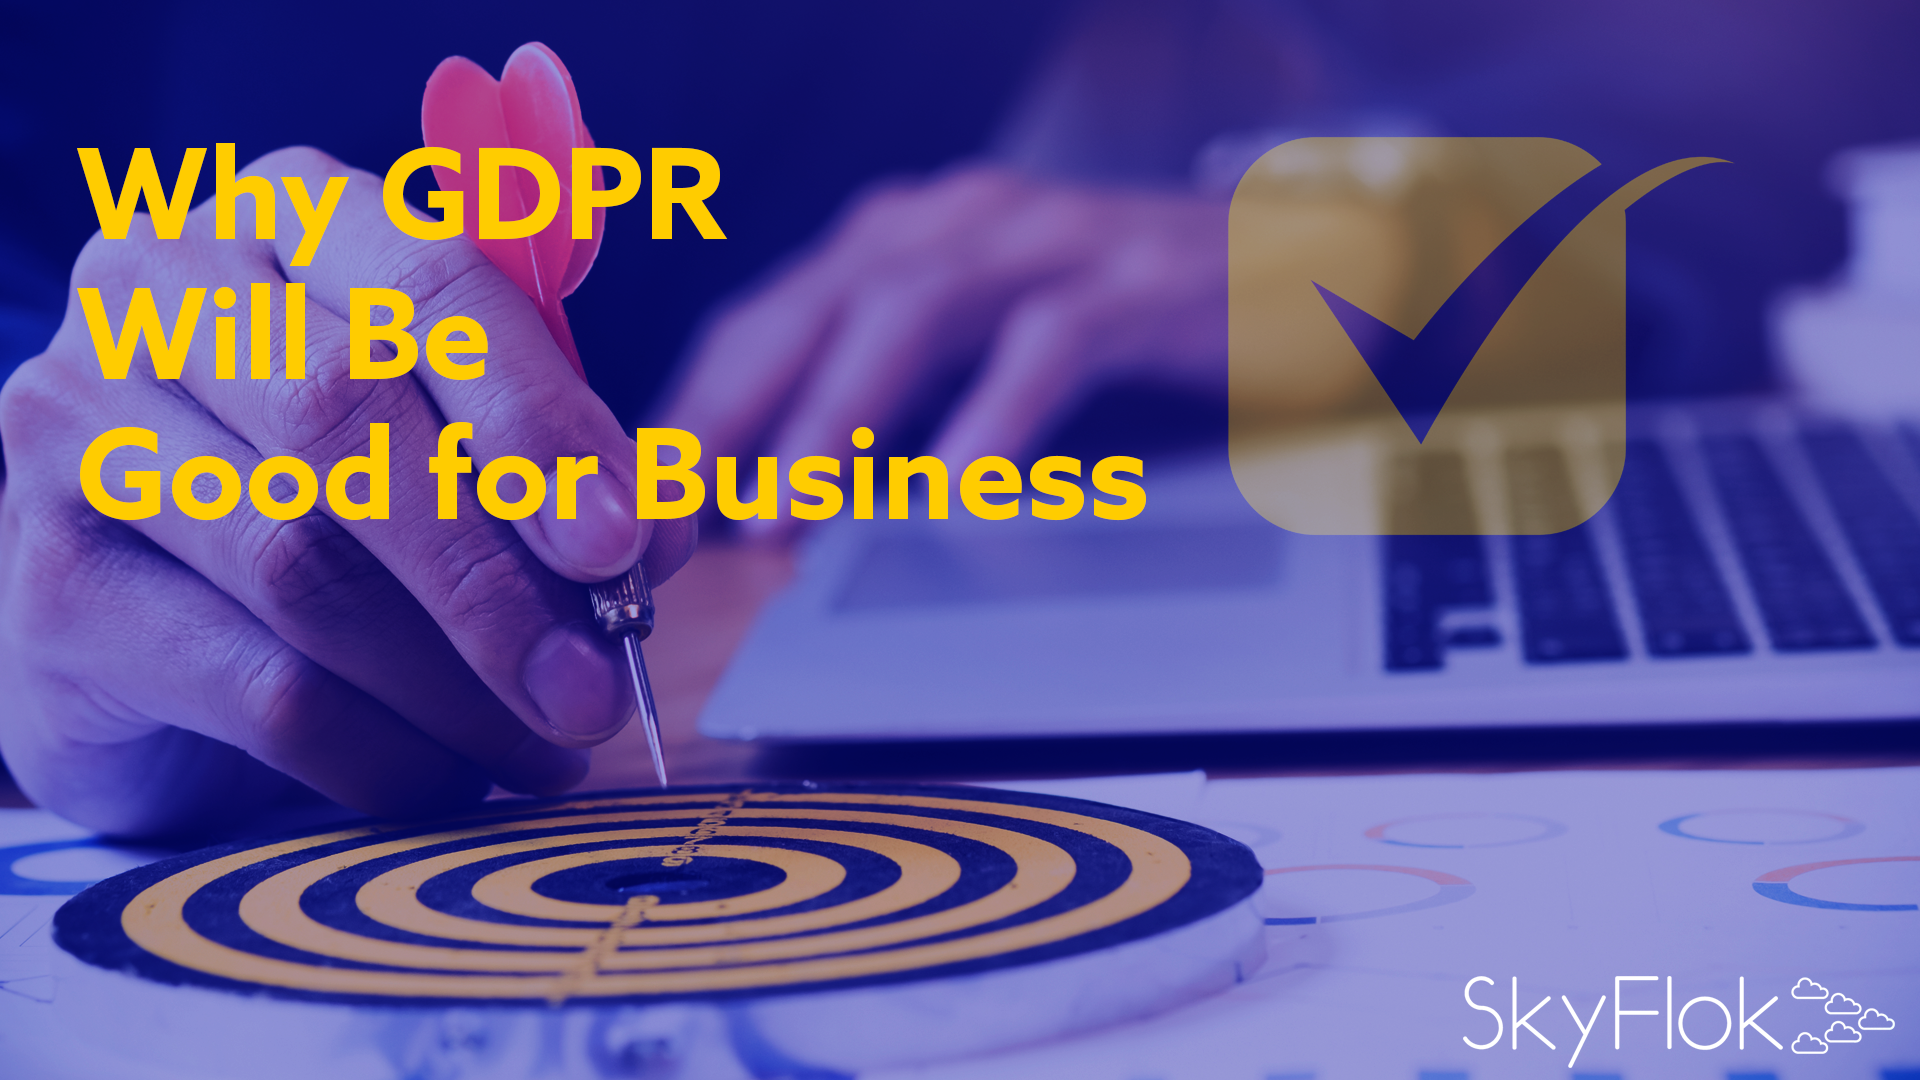 Why GDPR Will Be Good for Business